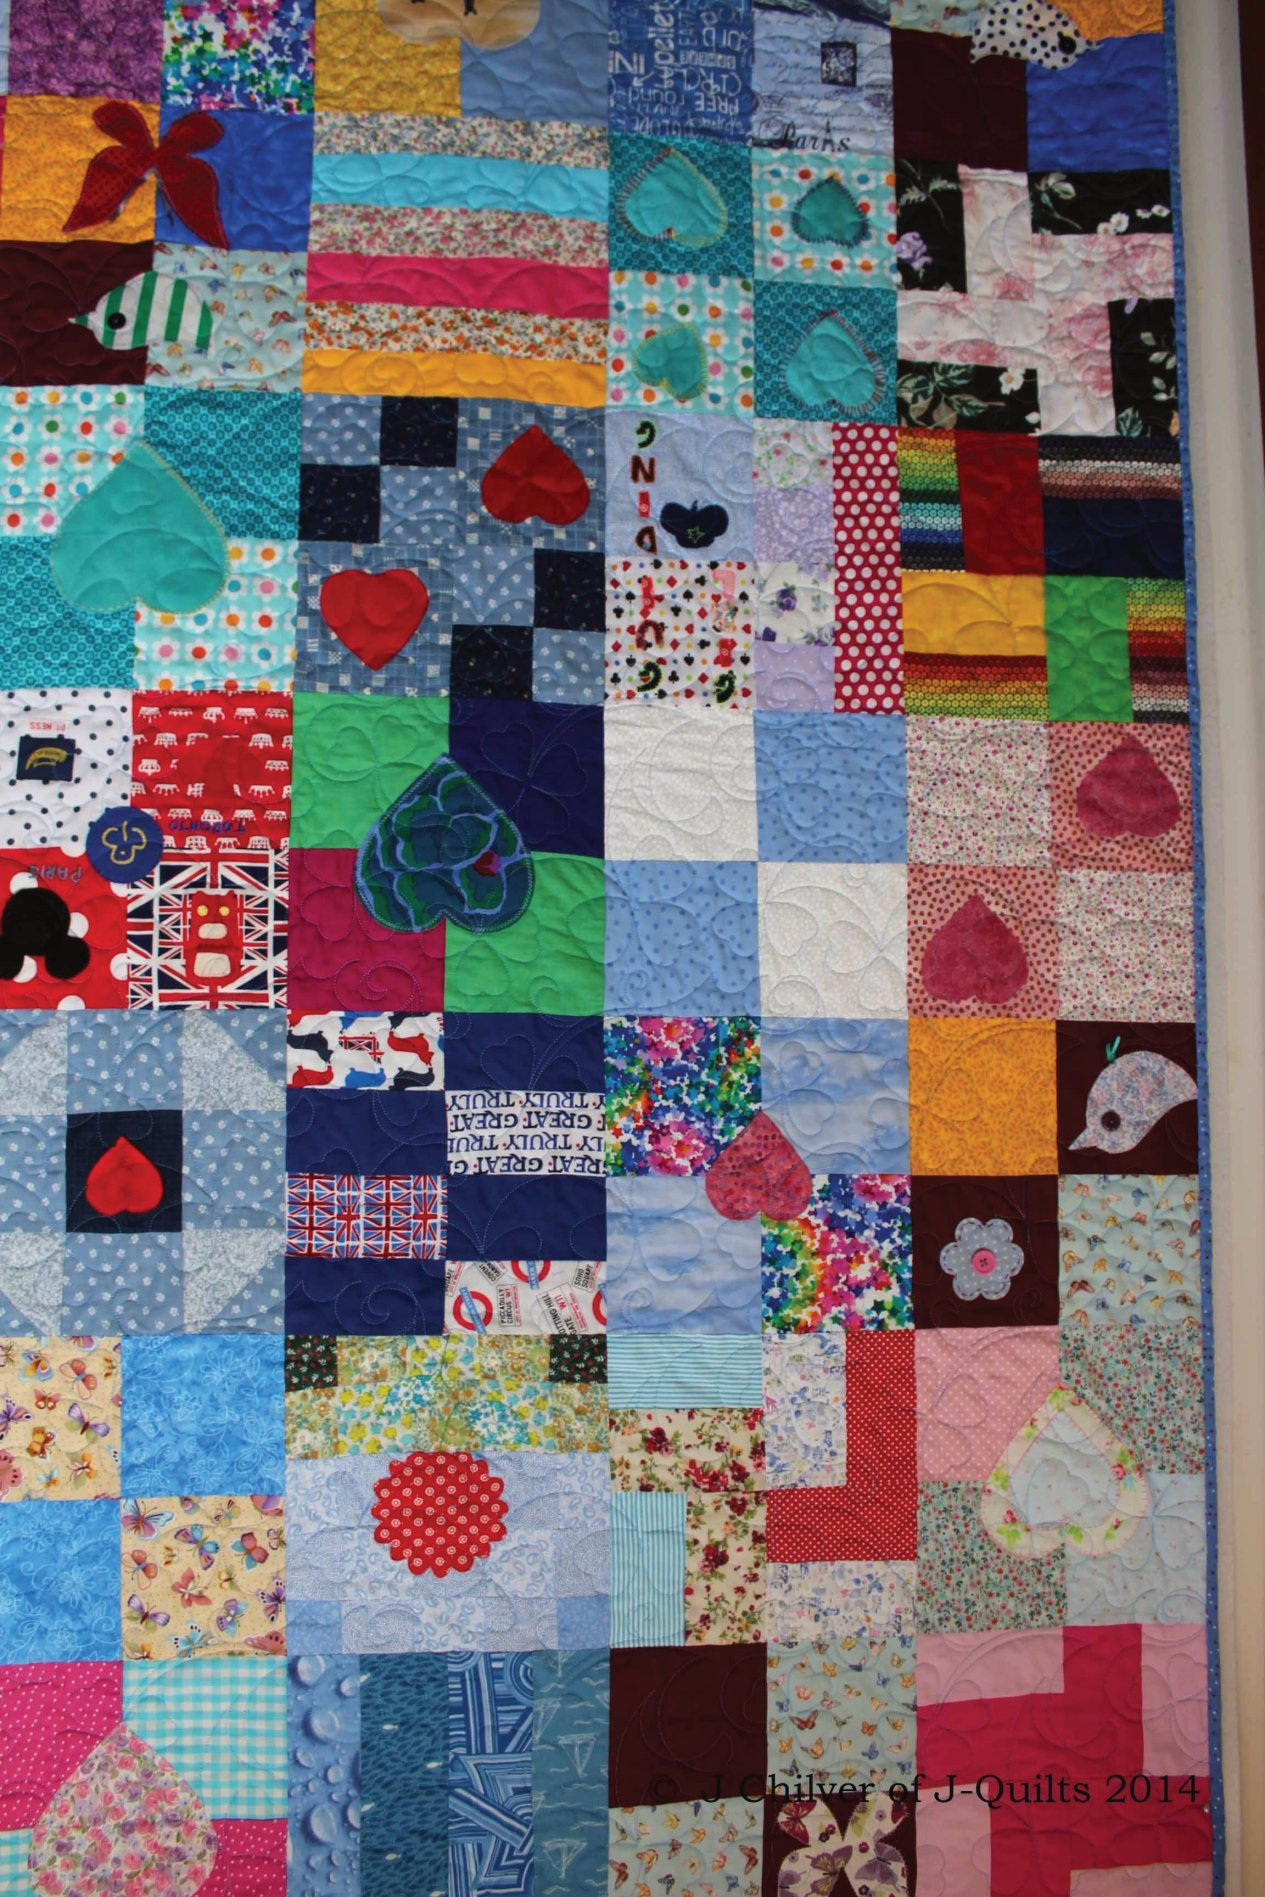 Lovely scrappy nature of the quilt